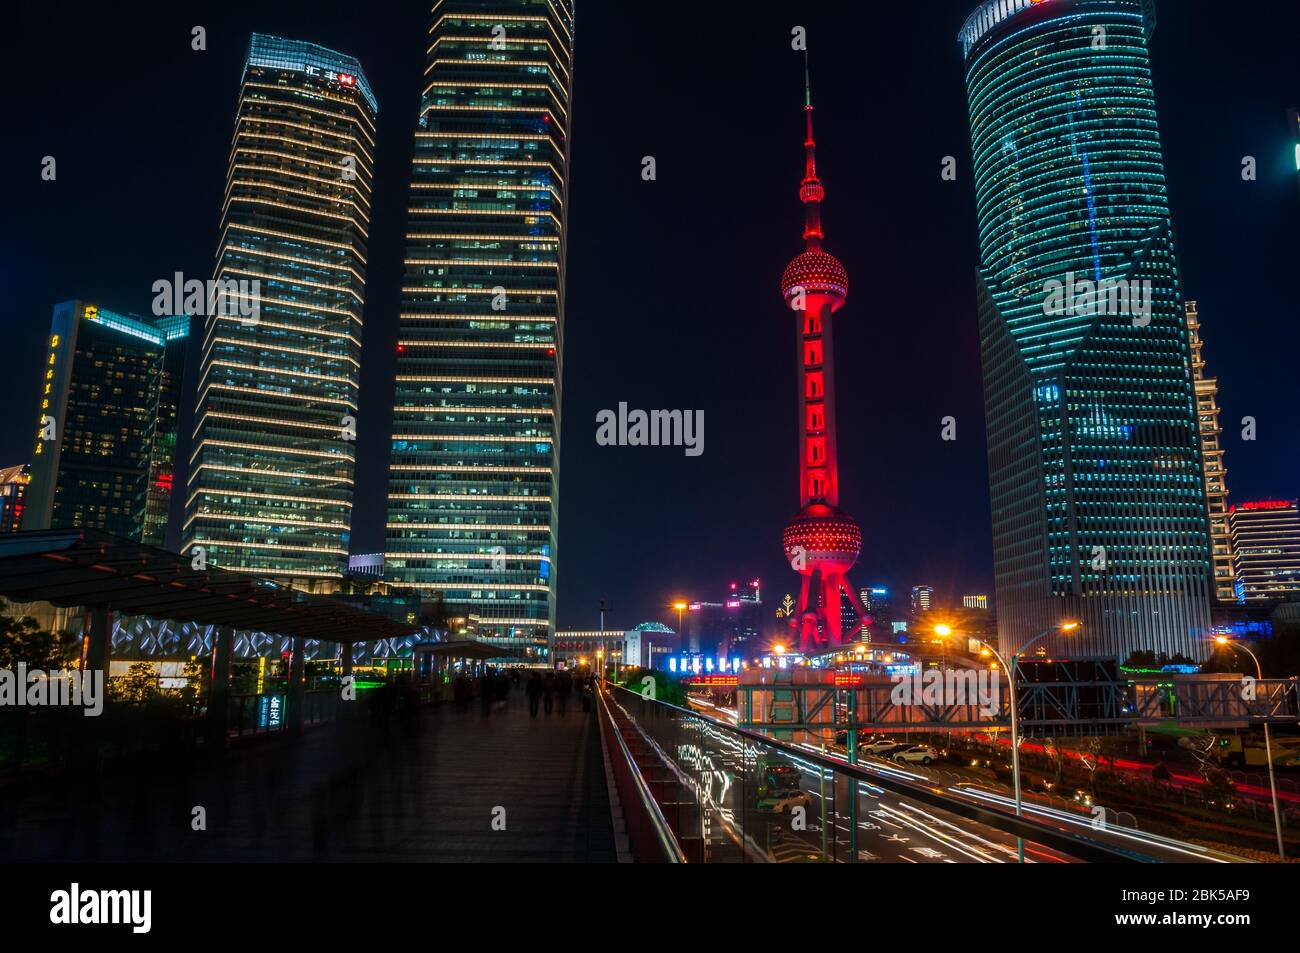 The Oriental Pearl Tower seen at night from the skywalk in Lujiazui in the Pudong New Area of Shanghai, China. Stock Photo